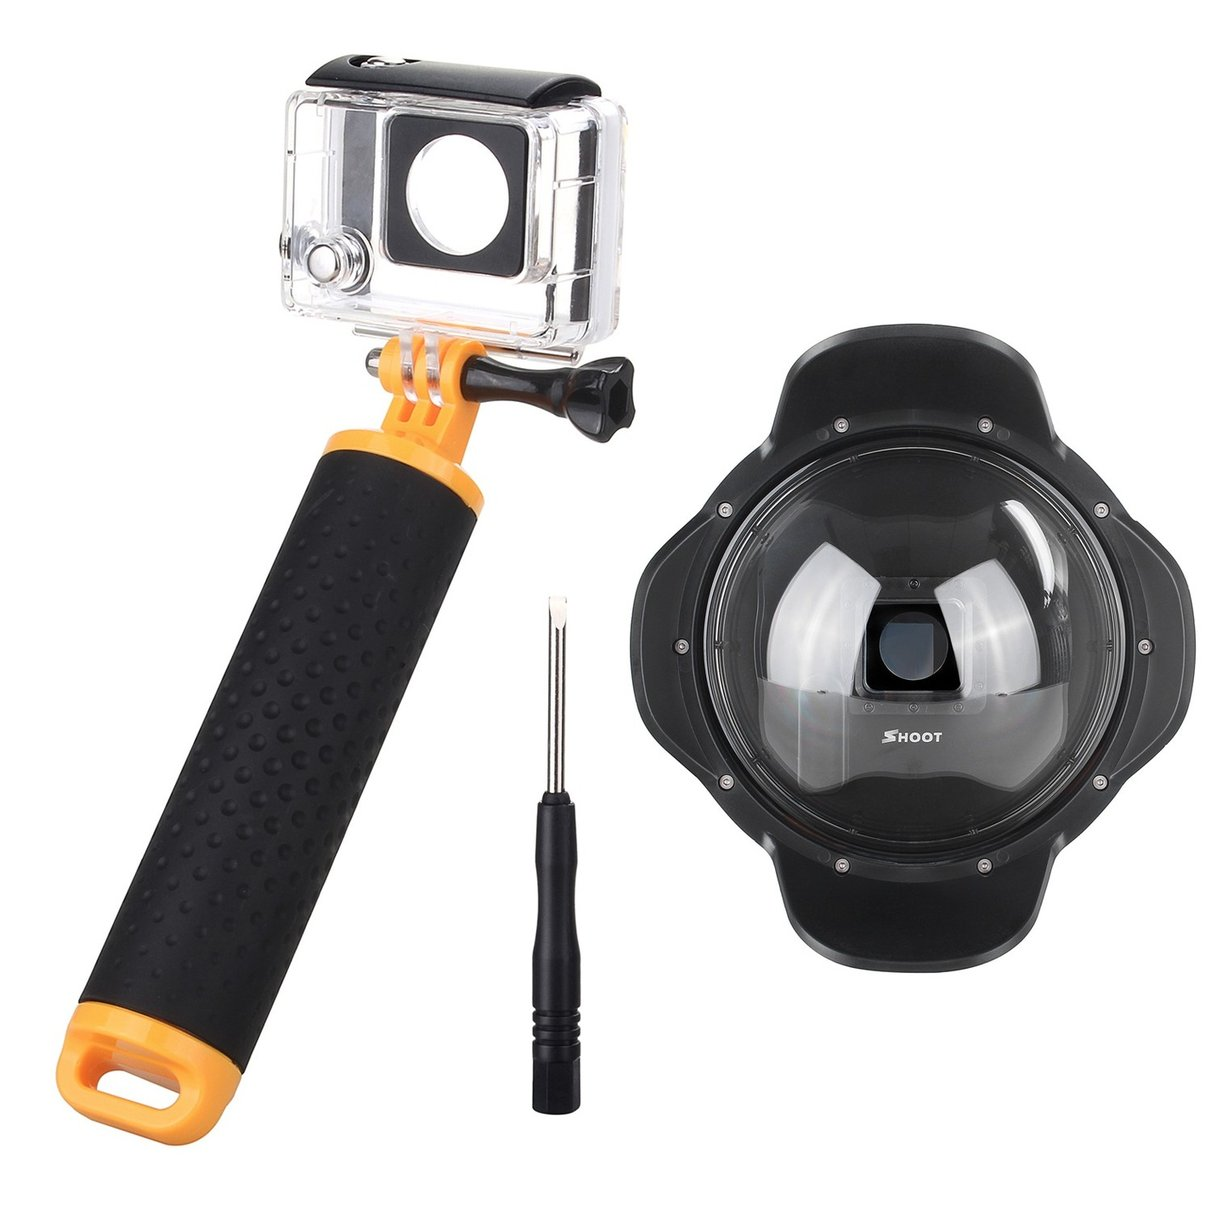 все цены на Shoot 6'' Diving Underwater Photography Gopro Dome Port Cover with Floaty Handle with Lens Hood for GoPro Hero 3+/4 онлайн